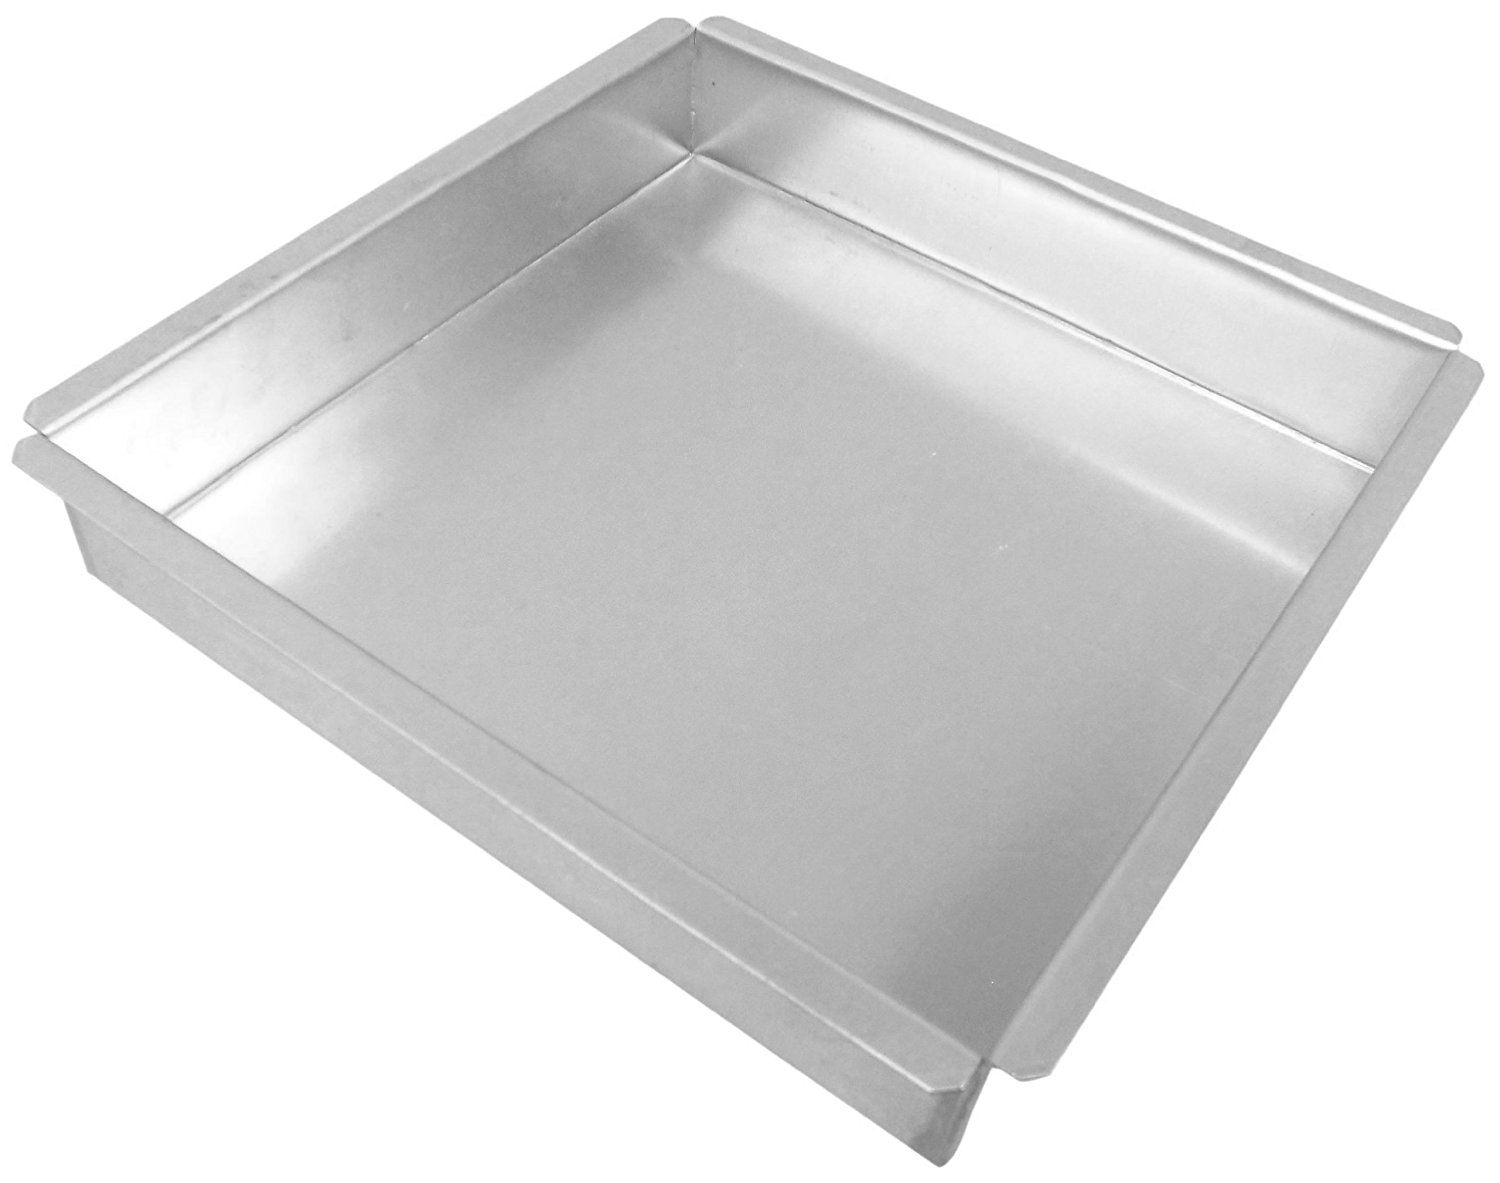 Allied Metal Sq15152 Heavy Weight Aluminum Square Baking Pizza Pan 15 By 15 By 2 Inch Startling Big Discounts Available Here Bak Pizza Bake Pan Pizza Pan